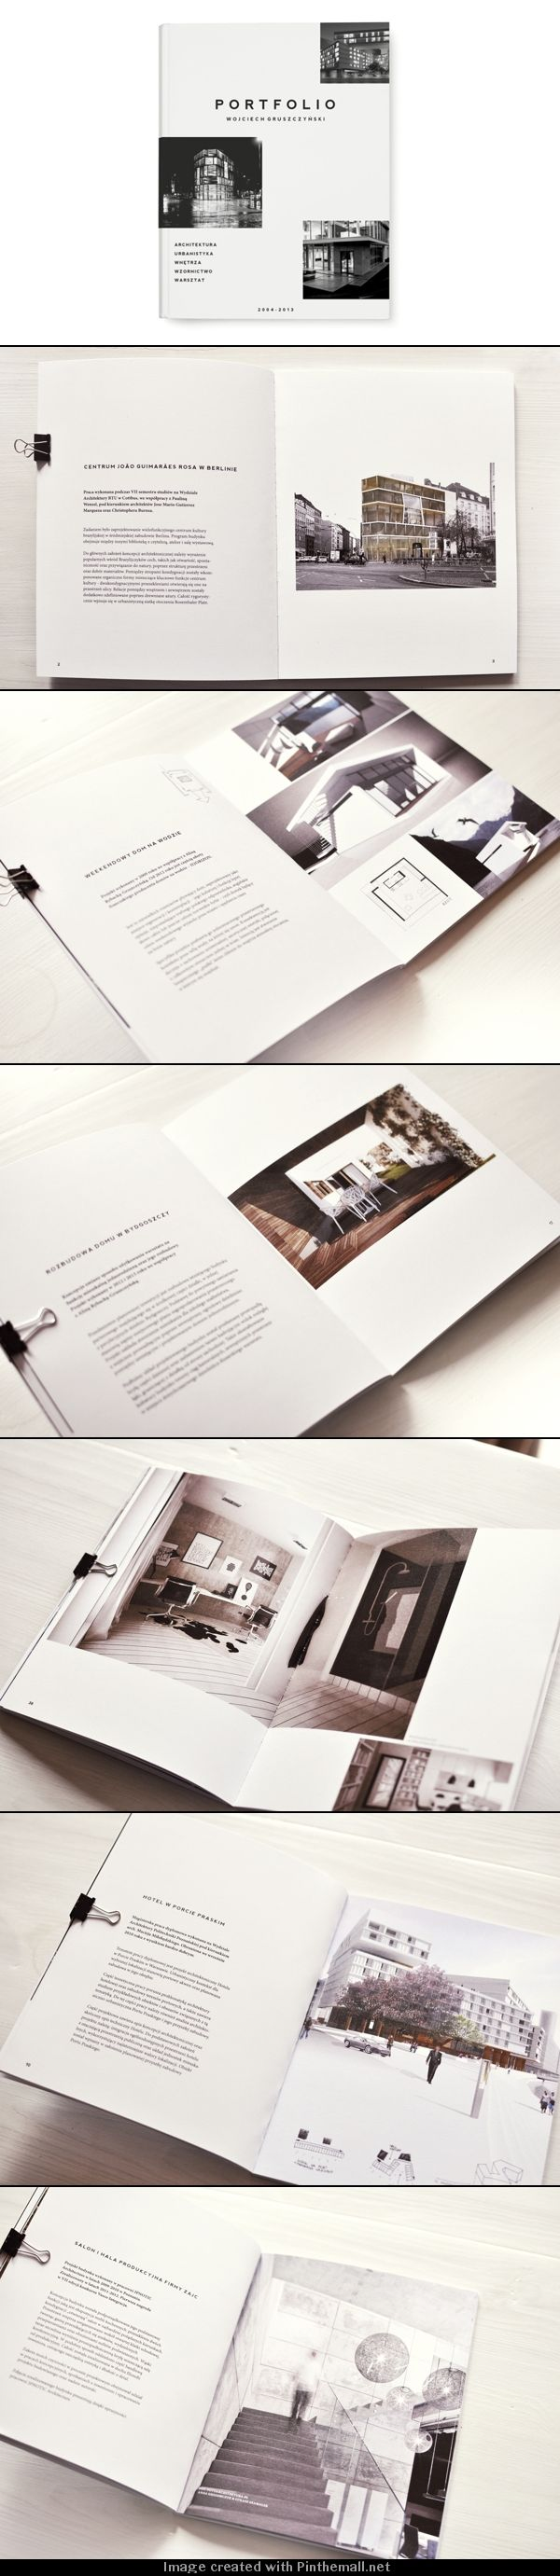 I like the use and juxtaposition of text and pictures. Font is simple but effective Portfolio layout